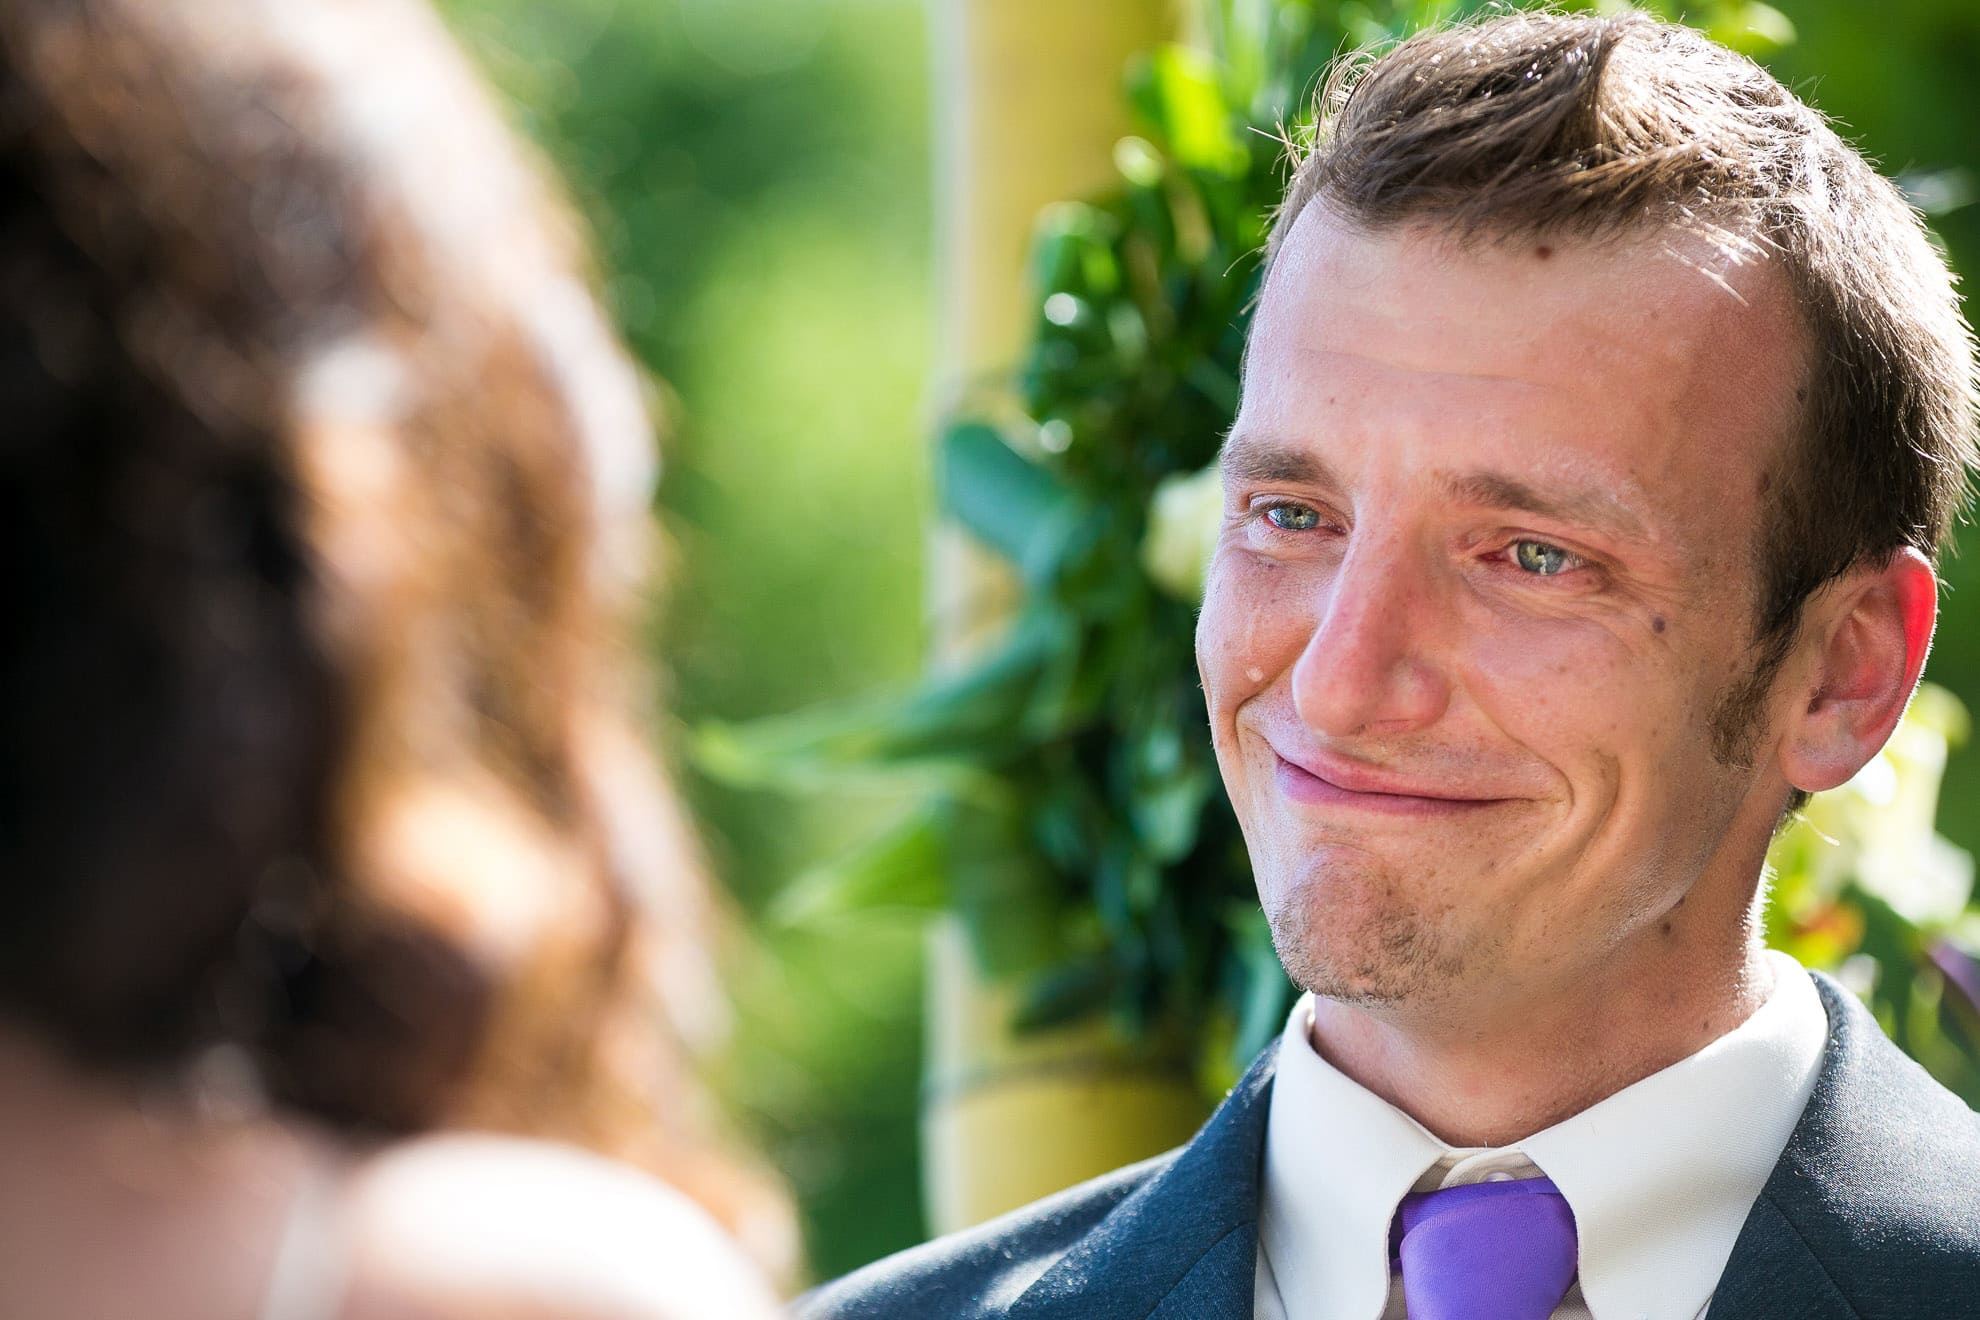 groom crying at wedding